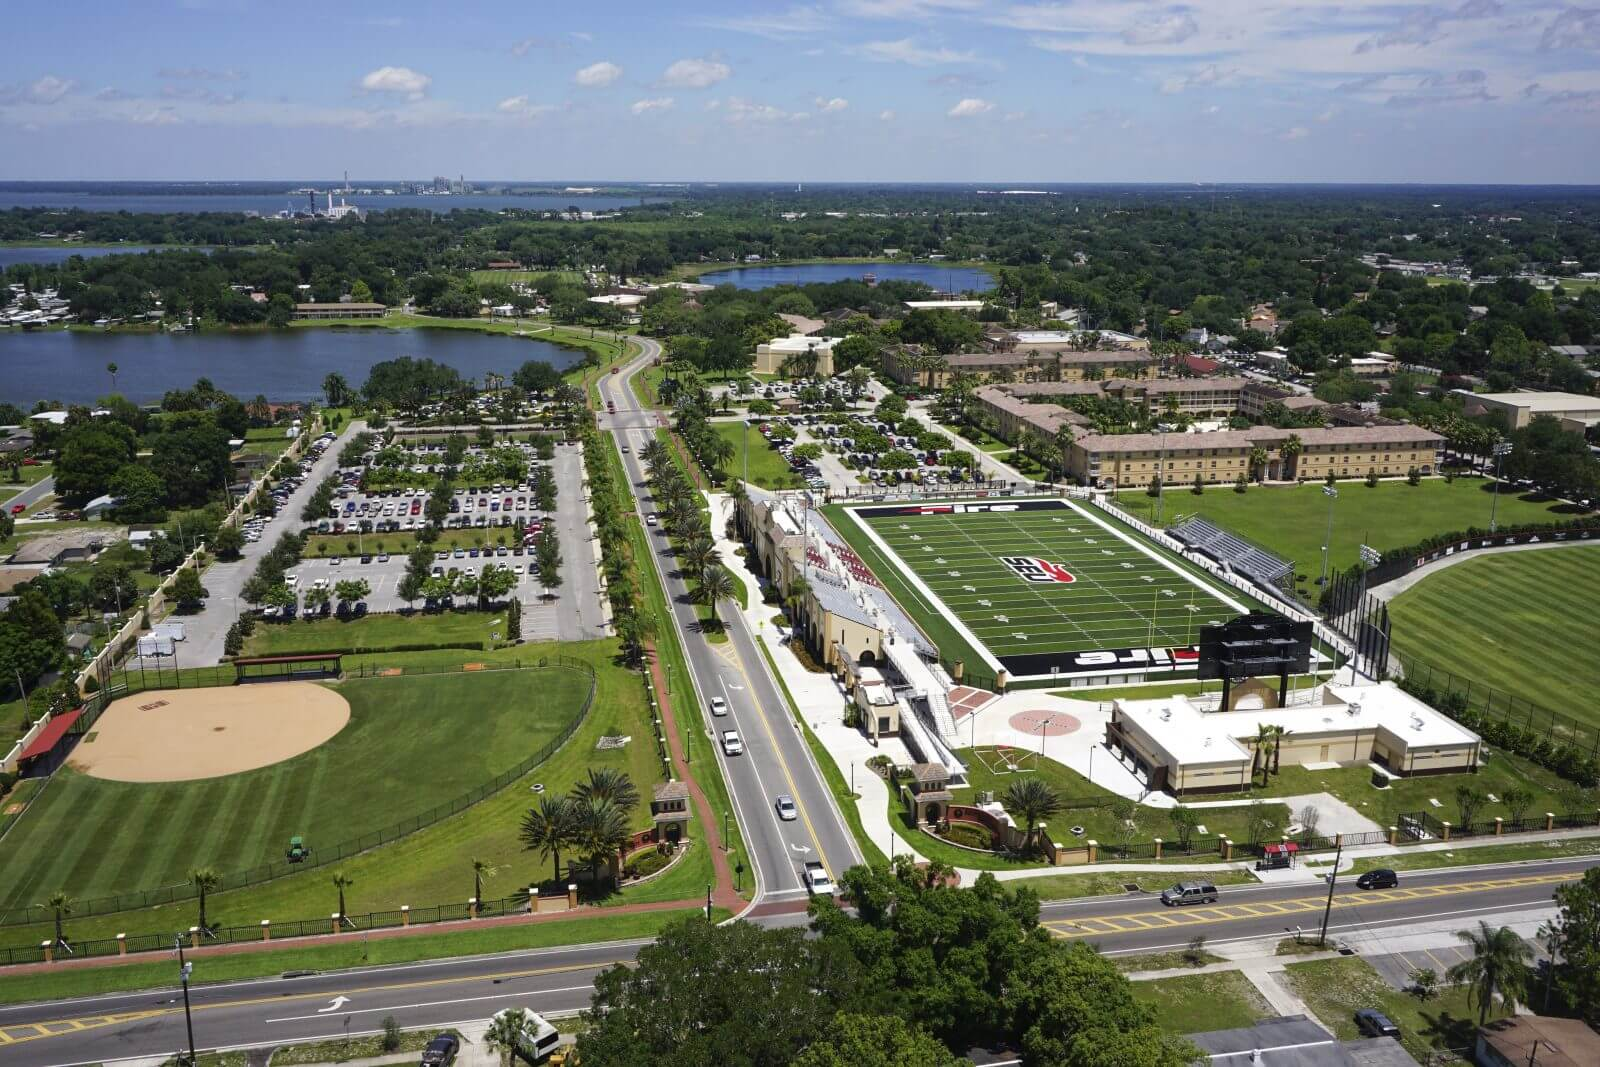 South Eastern University >> Investment Fuels Growth At Southeastern University Central